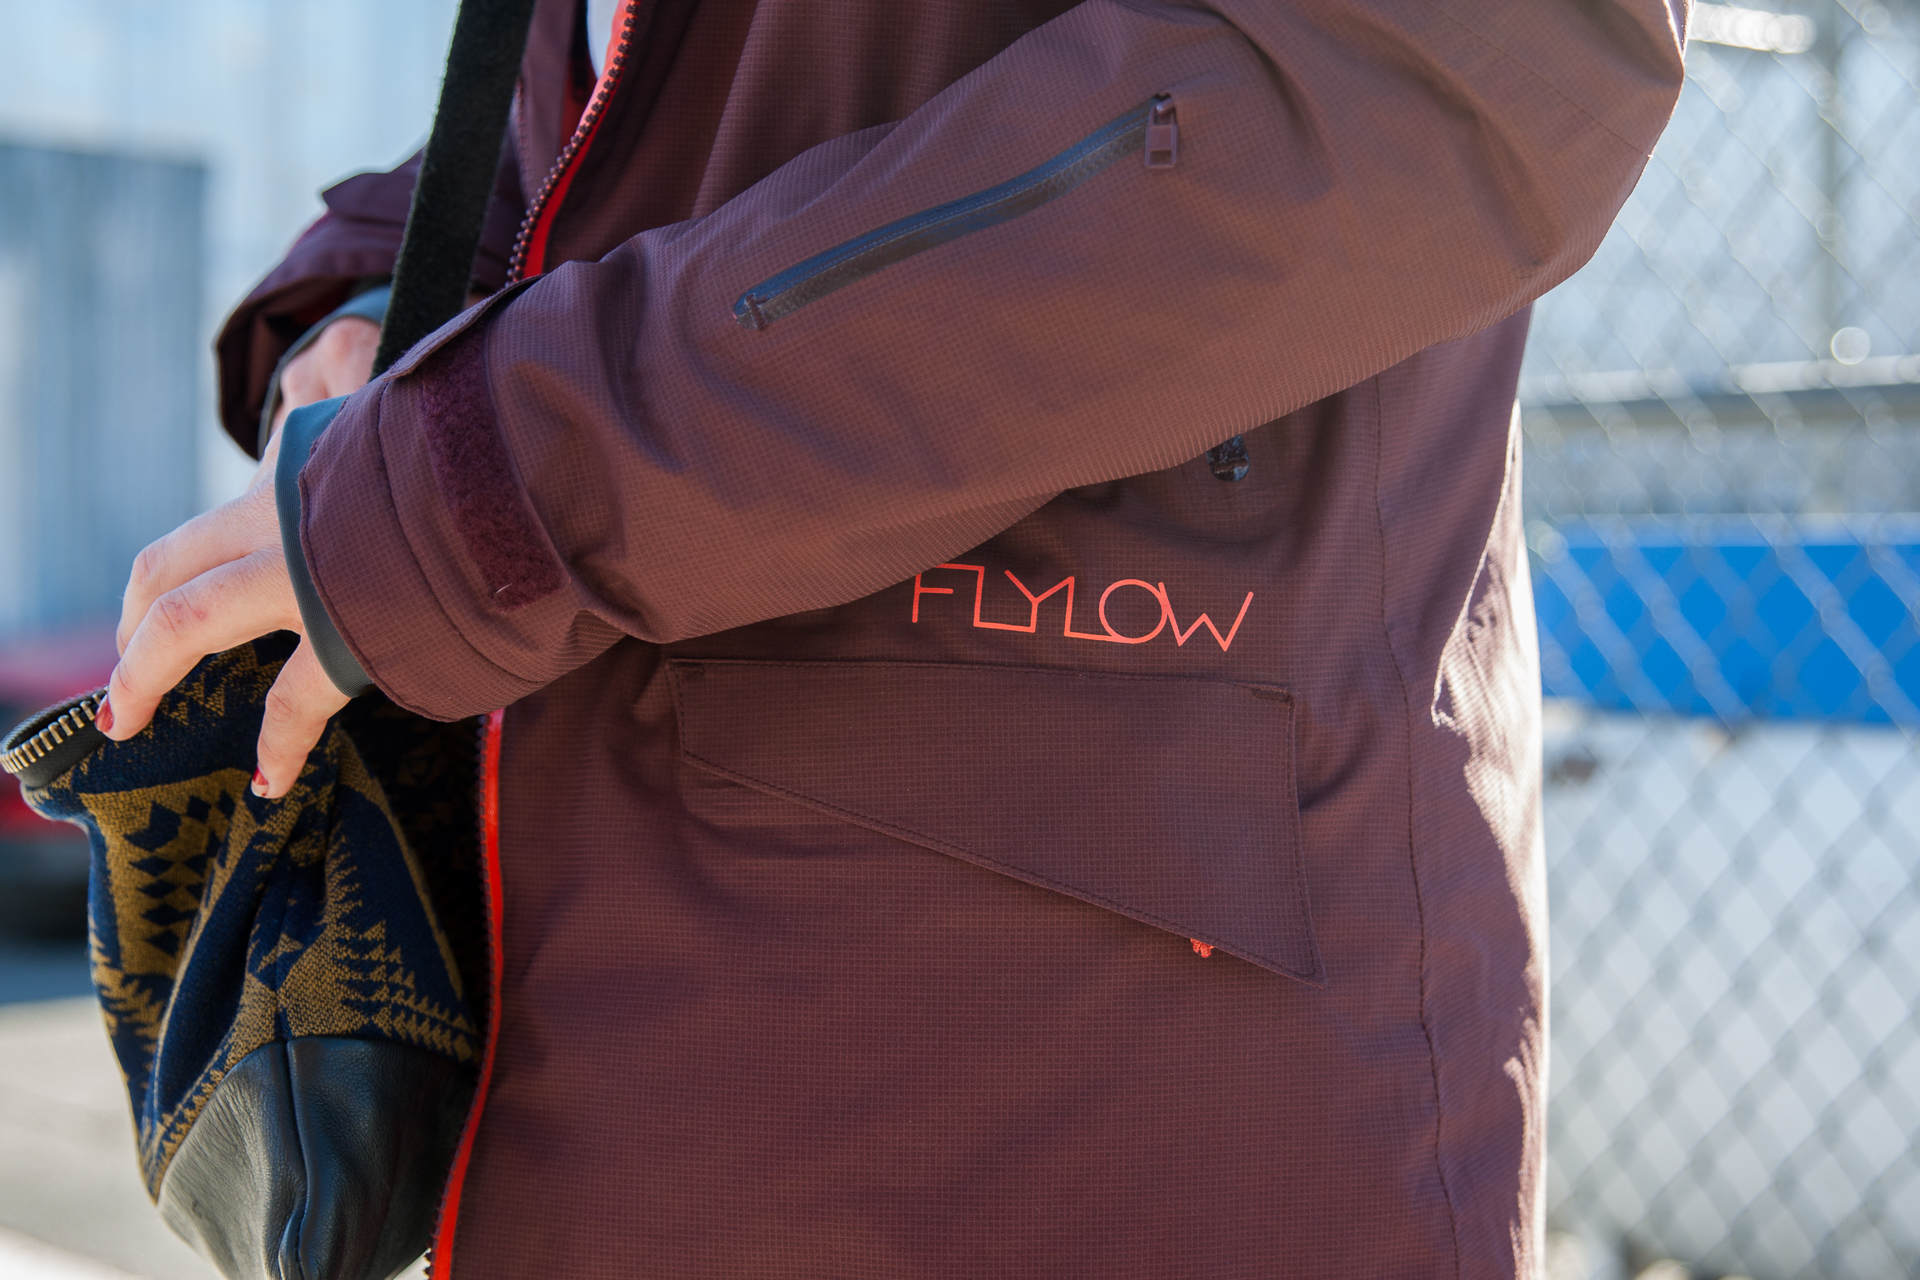 Flylow jacket. Photo: David Reddick